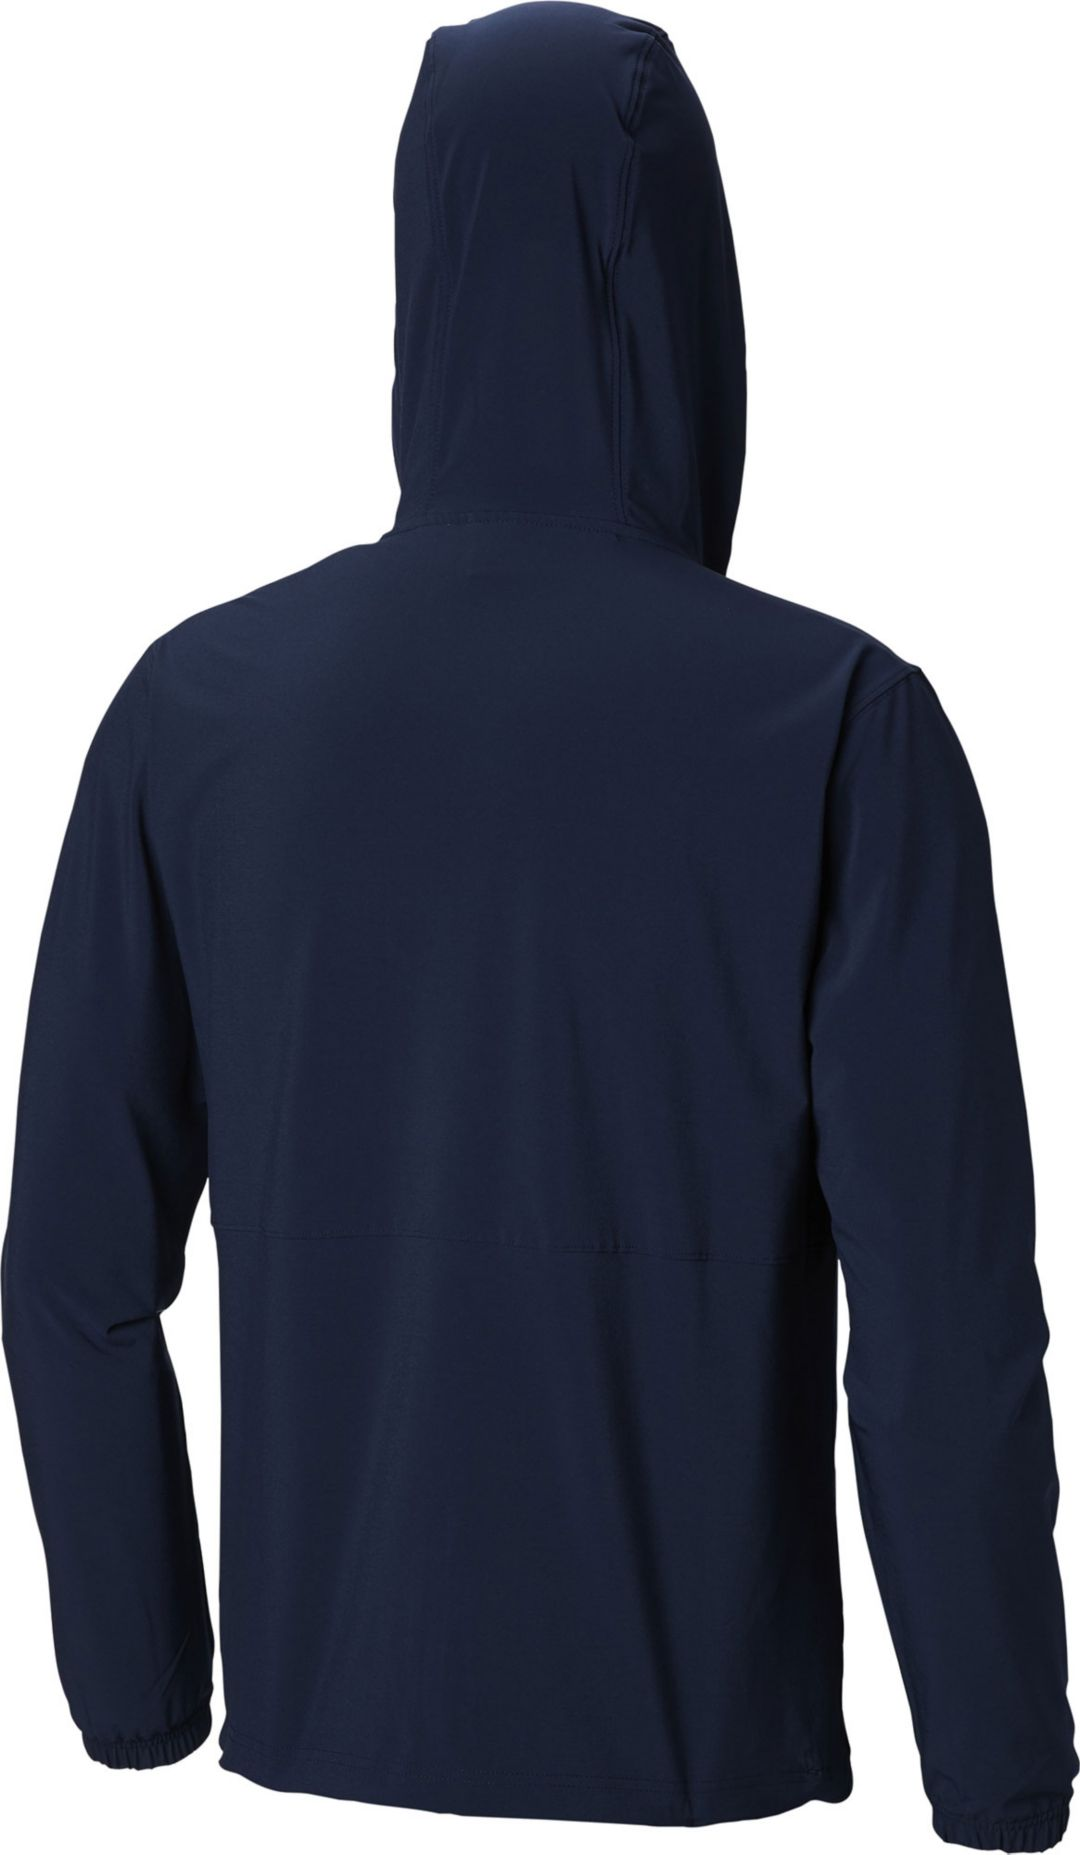 c3d8150e6 Columbia Men's Outdoor Elements Full Zip Hoodie | DICK'S Sporting Goods